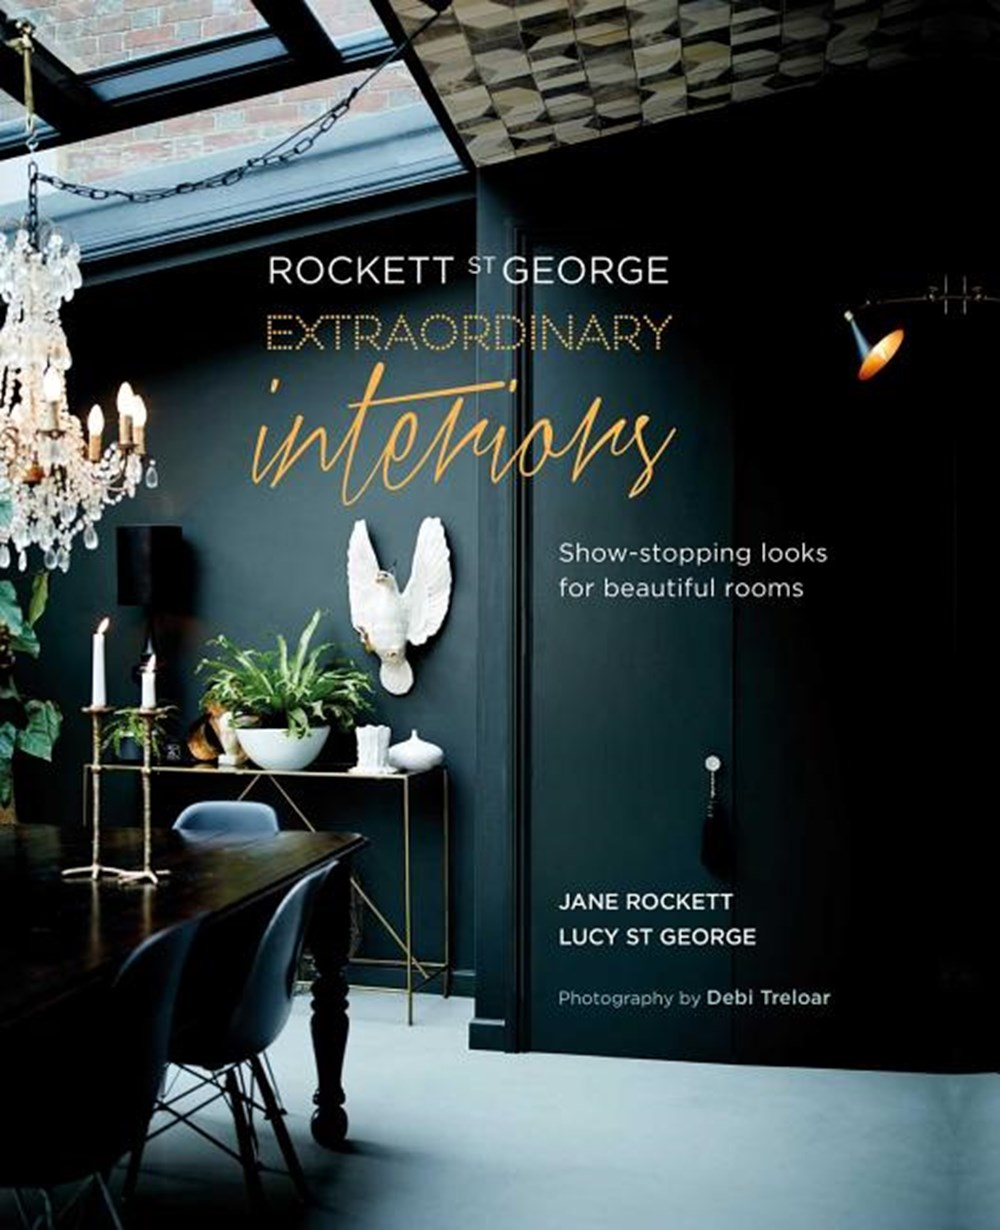 Rockett St George Extraordinary Interiors: Show-Stopping Looks for Unique Interiors